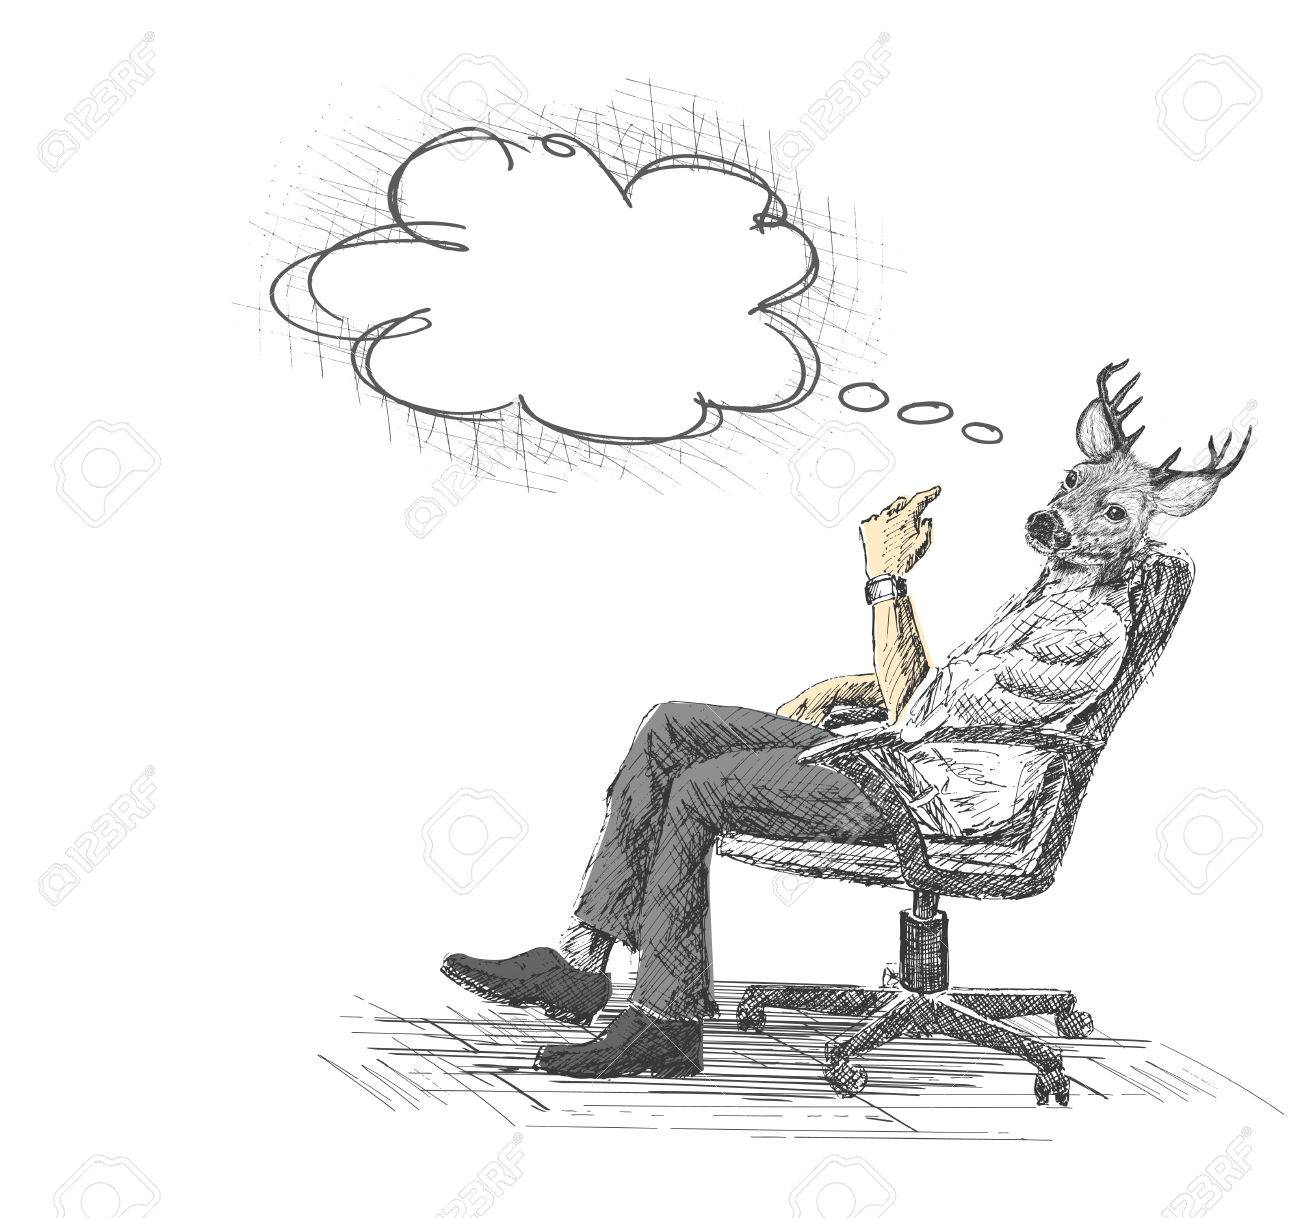 Bürostuhl comic  Hand Drawn sketch vector illustration of Thoughtful young businessman  sitting on office chair.